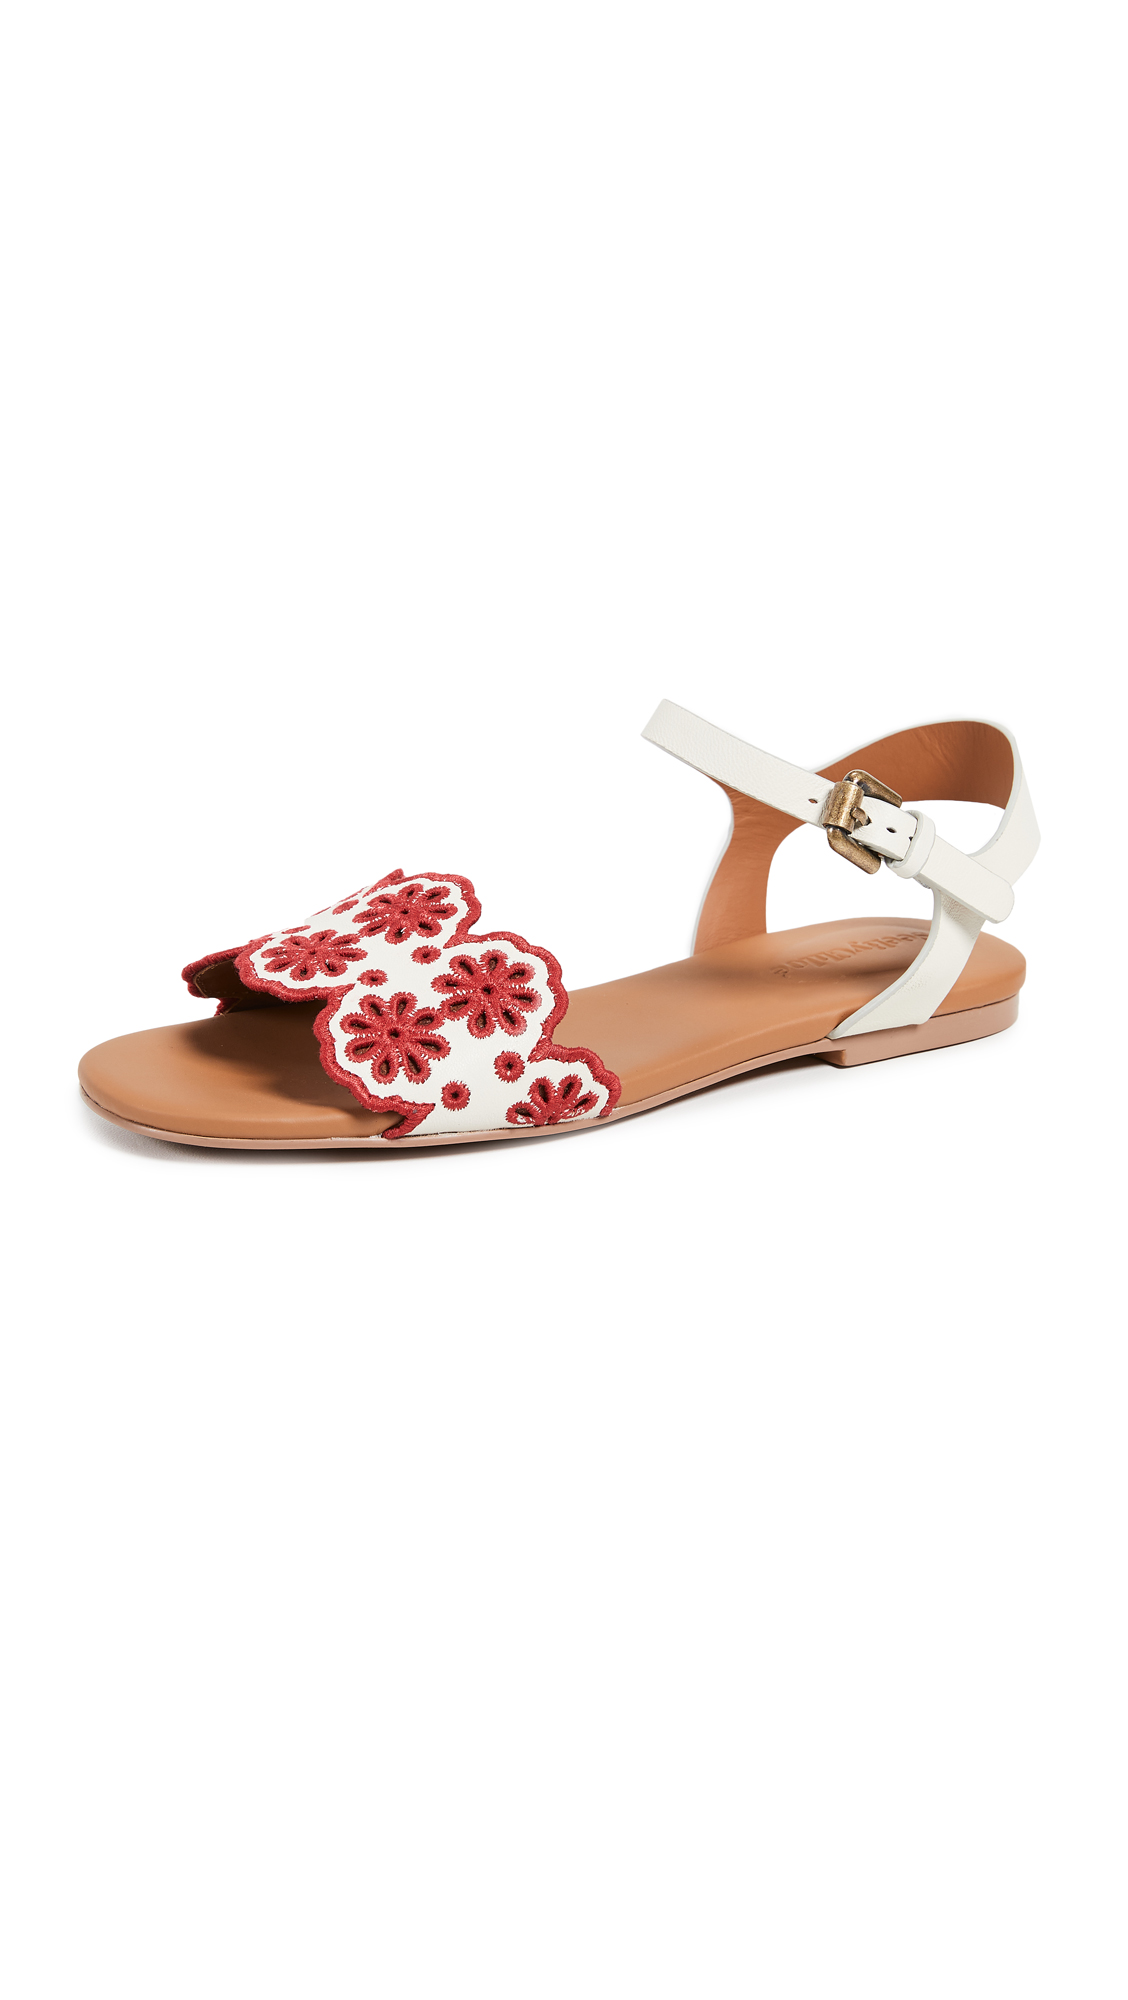 See by Chloe Krysty Floral Flats - Gesso/Red